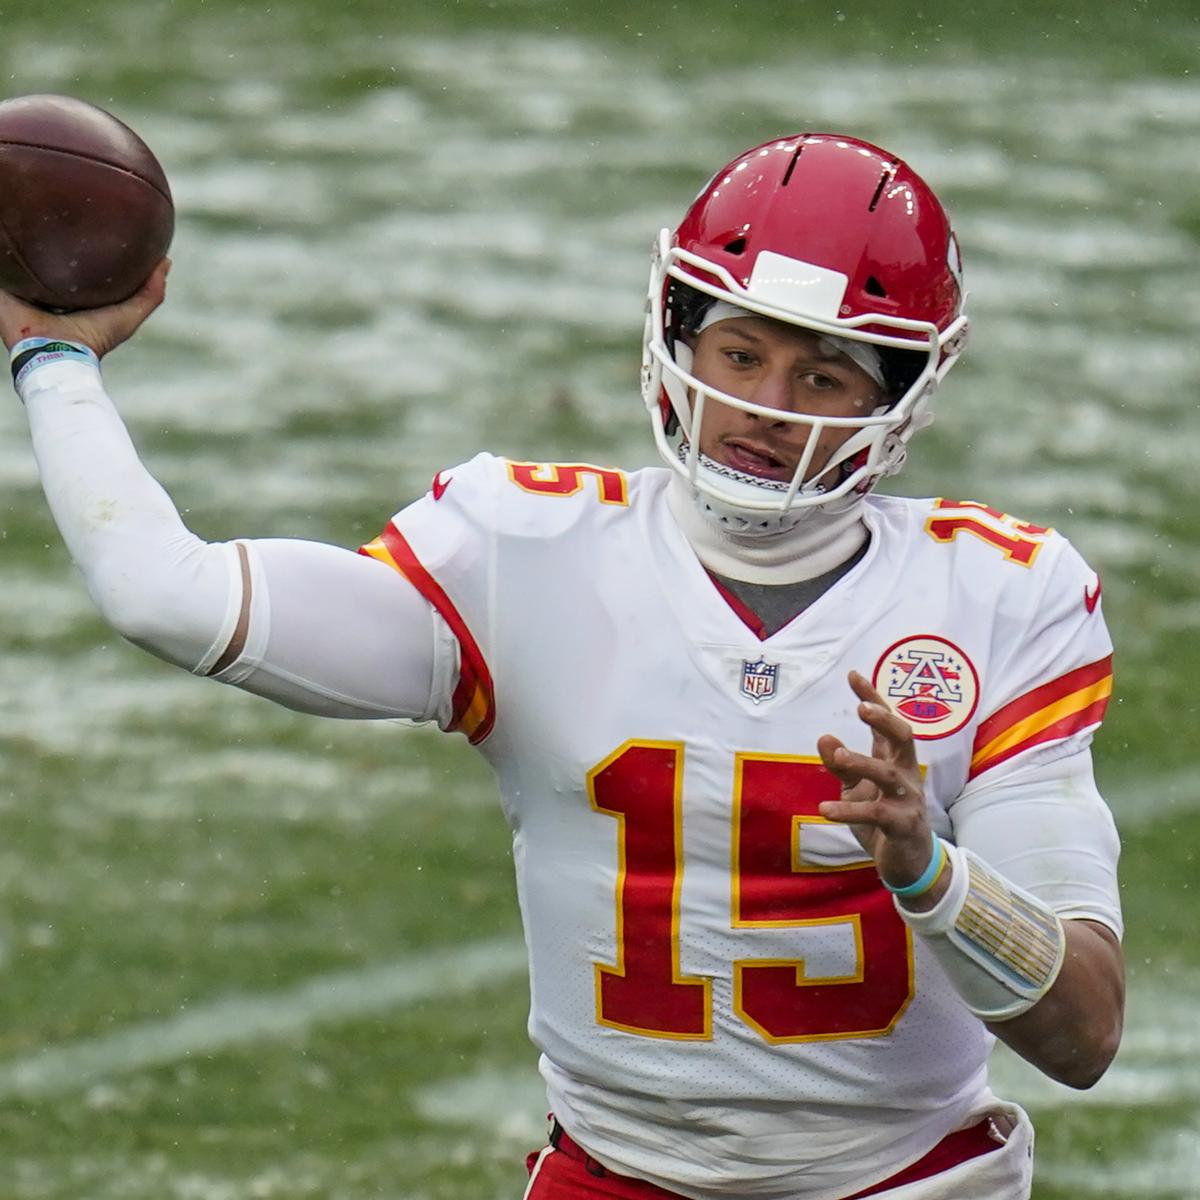 Jets Rumors: NY 'Never Seriously Considered' Drafting Patrick Mahomes in 2017